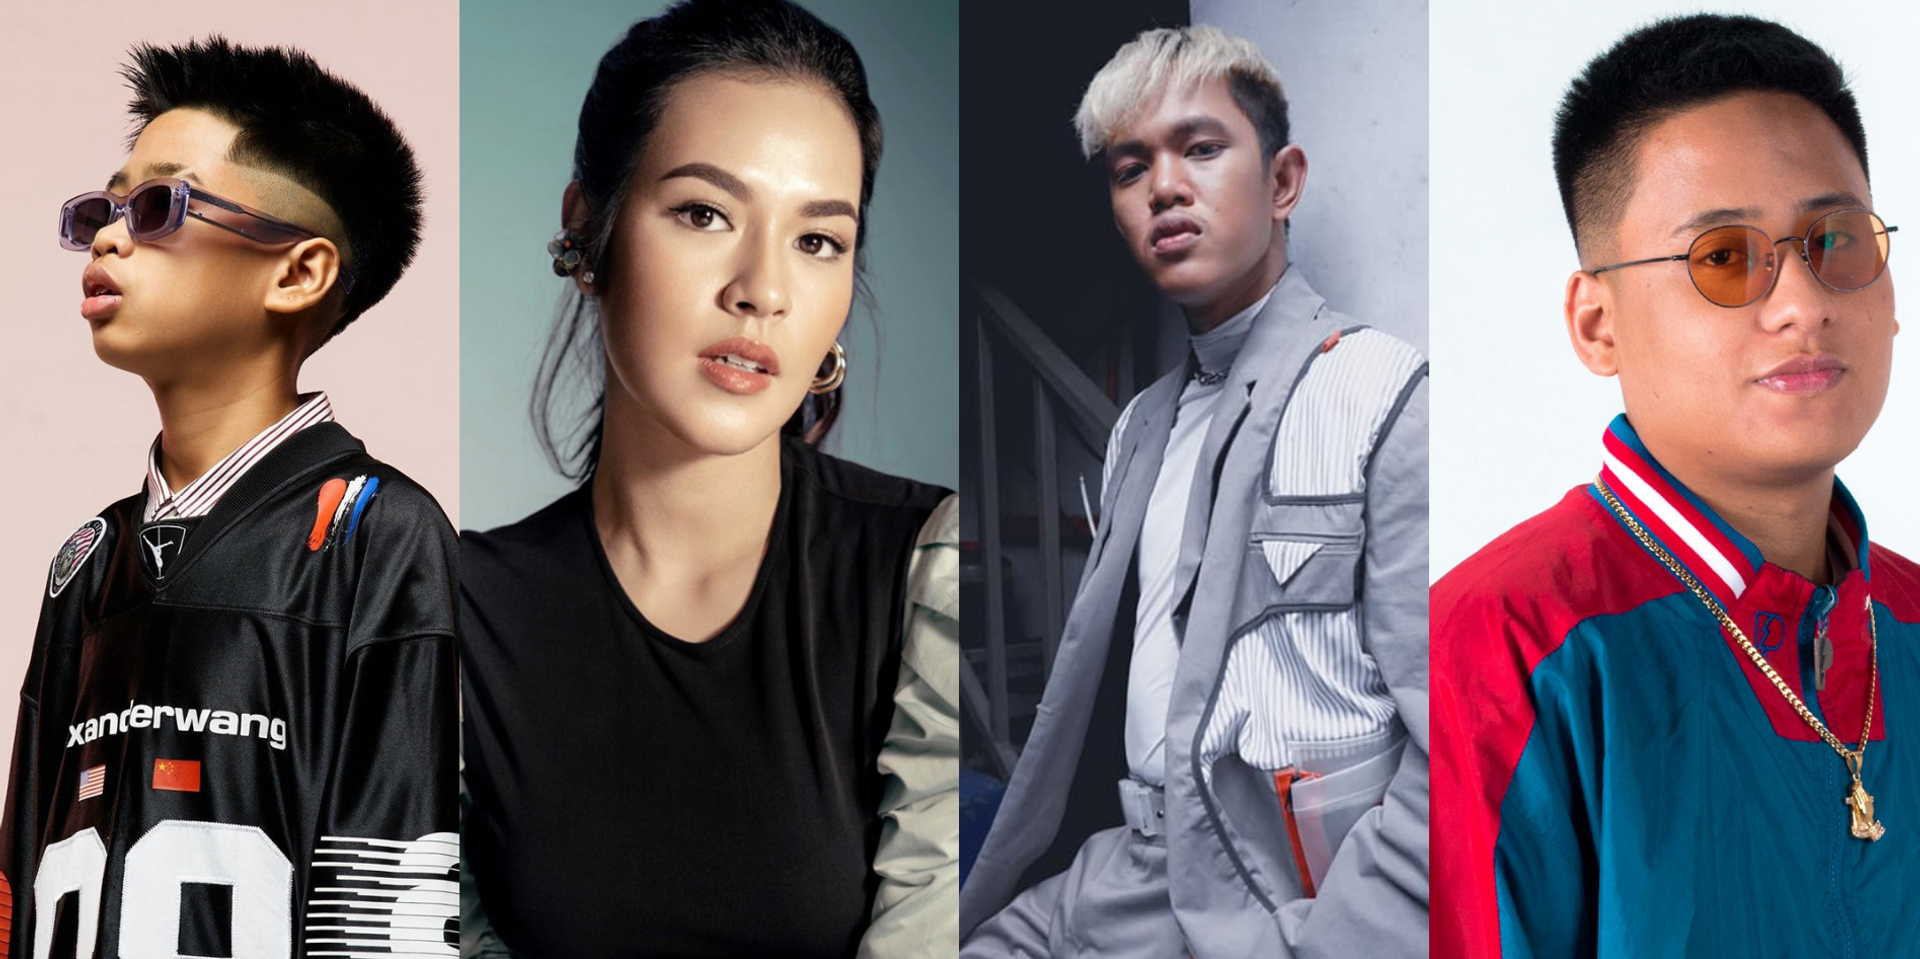 Raisa, Yonnyboii, Matthaios, and SPRITE team up for Raya and The Last Dragon-inspired song 'Trust Again'